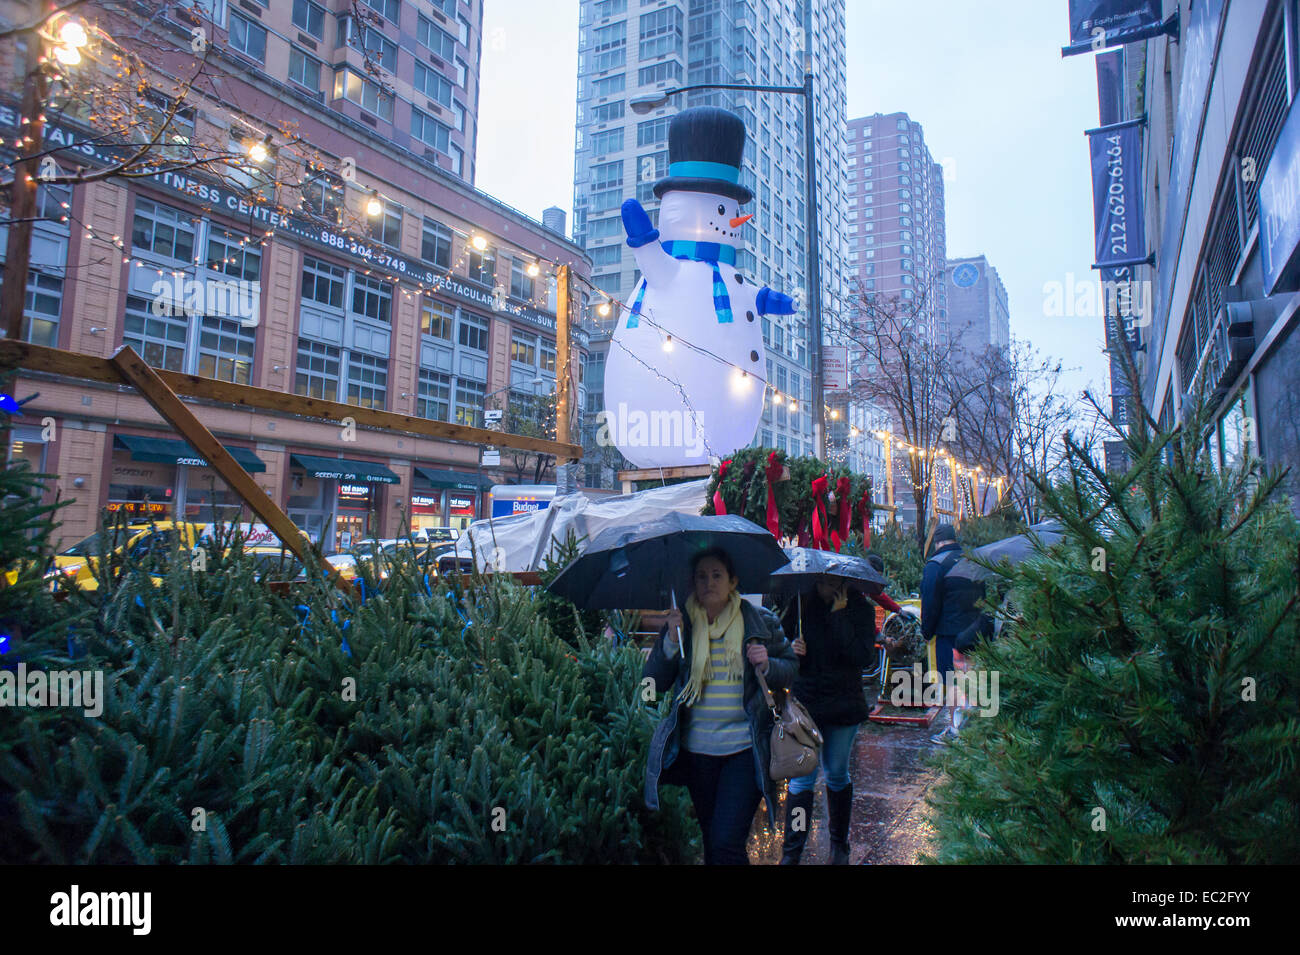 Christmas Trees And Decorations For Sale In The Chelsea Neighborhood